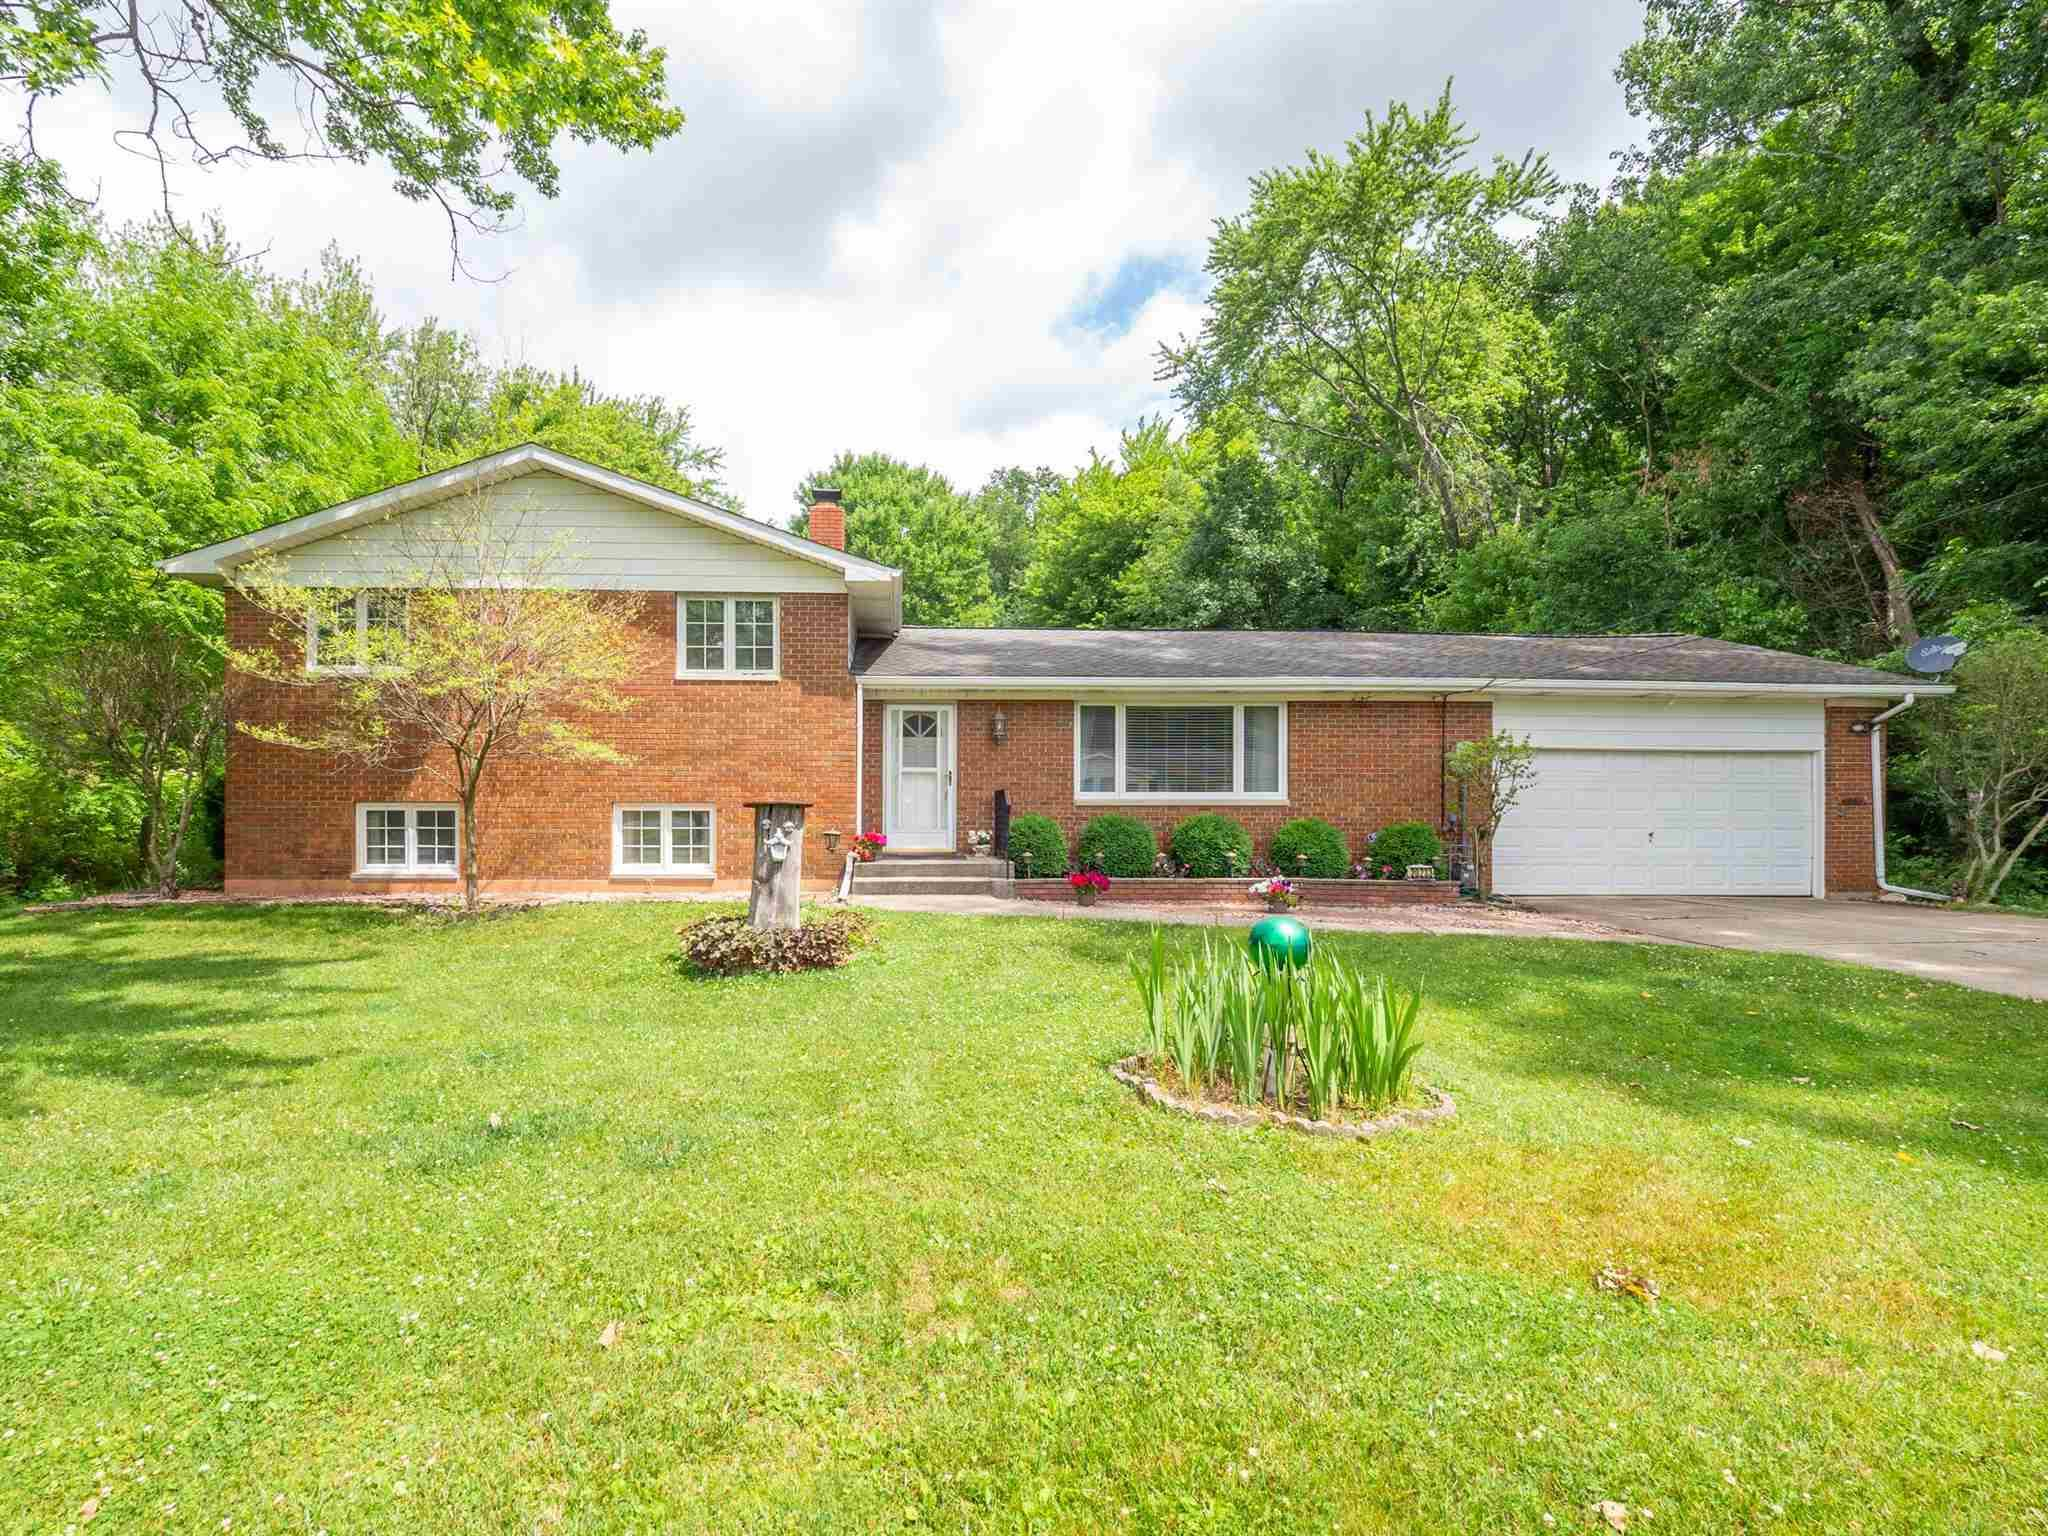 20233 Baughman South Bend, IN 46614